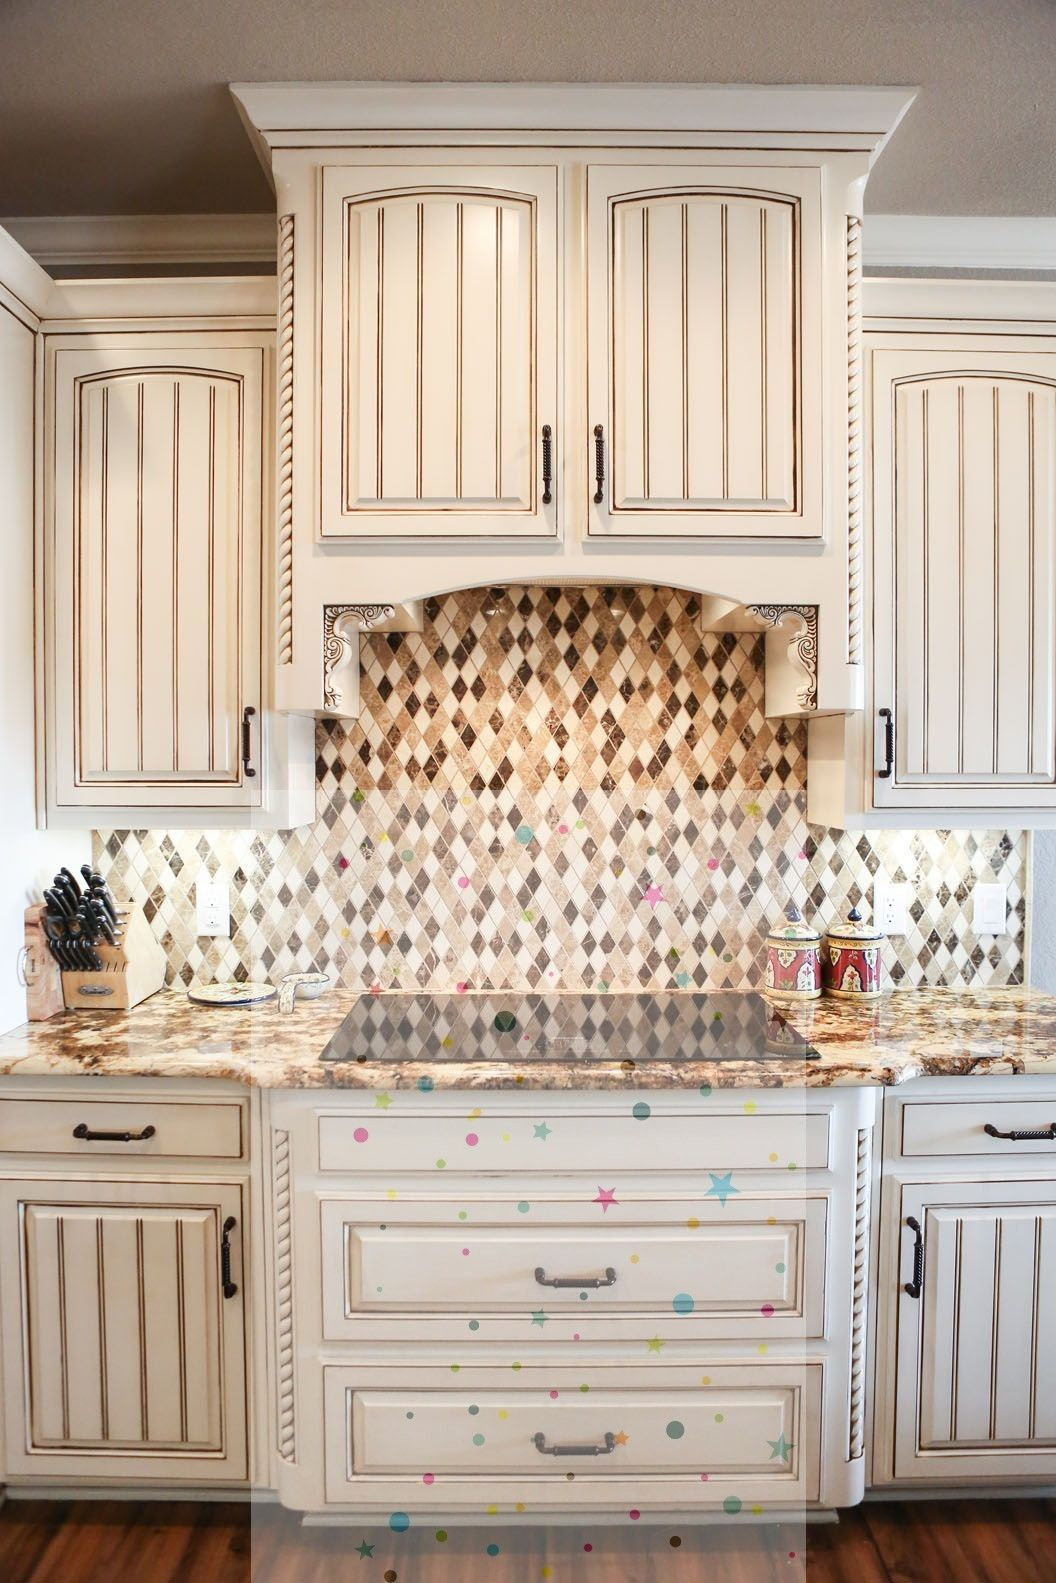 Creative Tricks Stainless Steel Backsplash Natural Stones Modern - Stainless-steel-backsplash-creative